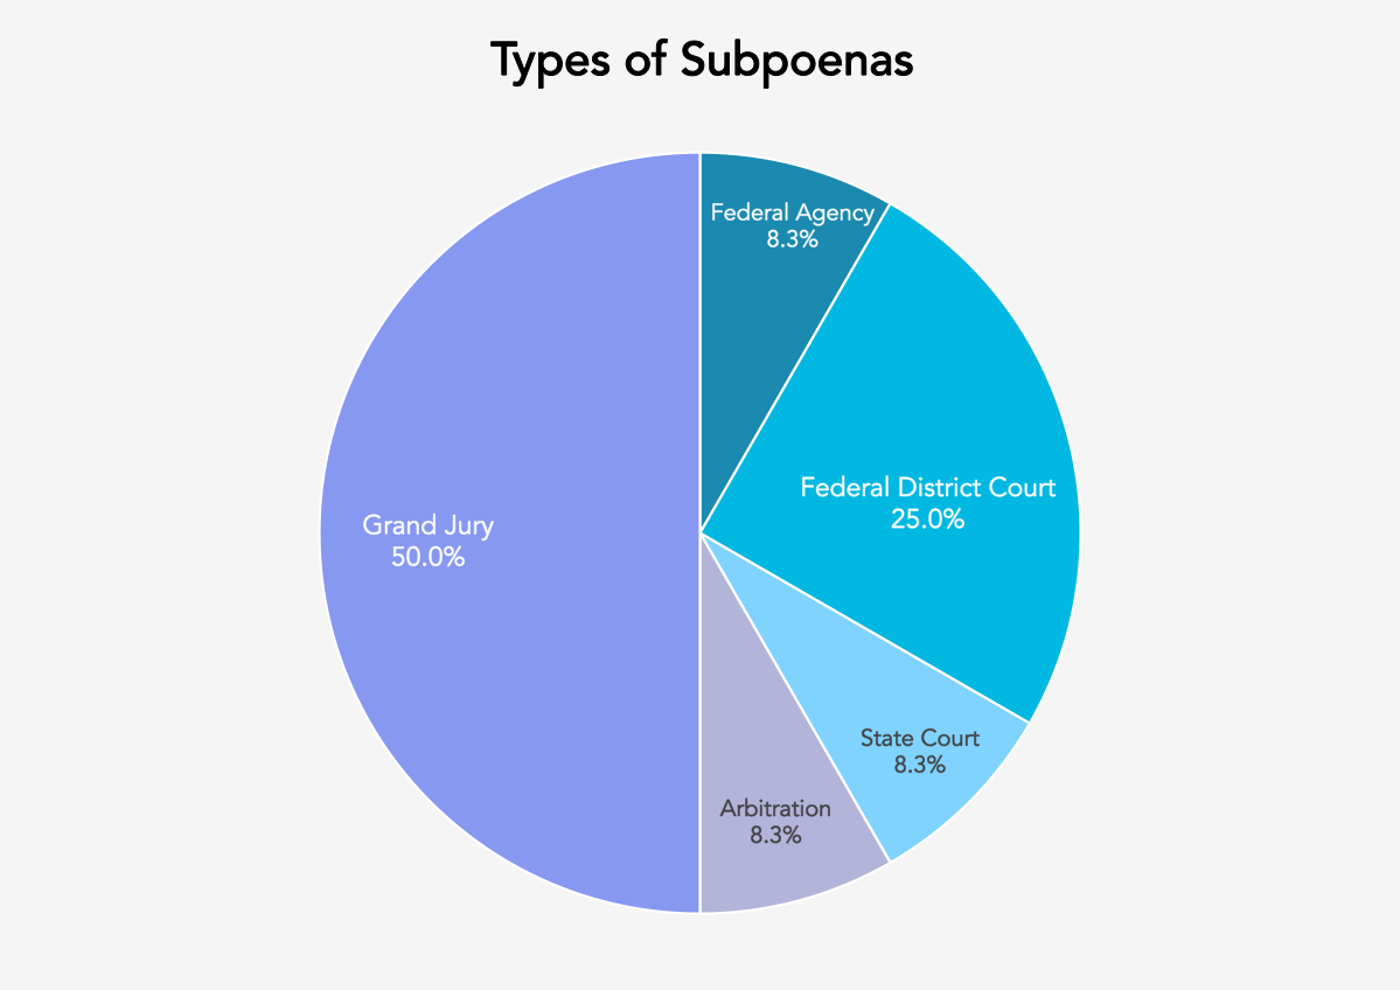 Types of Subpoenas